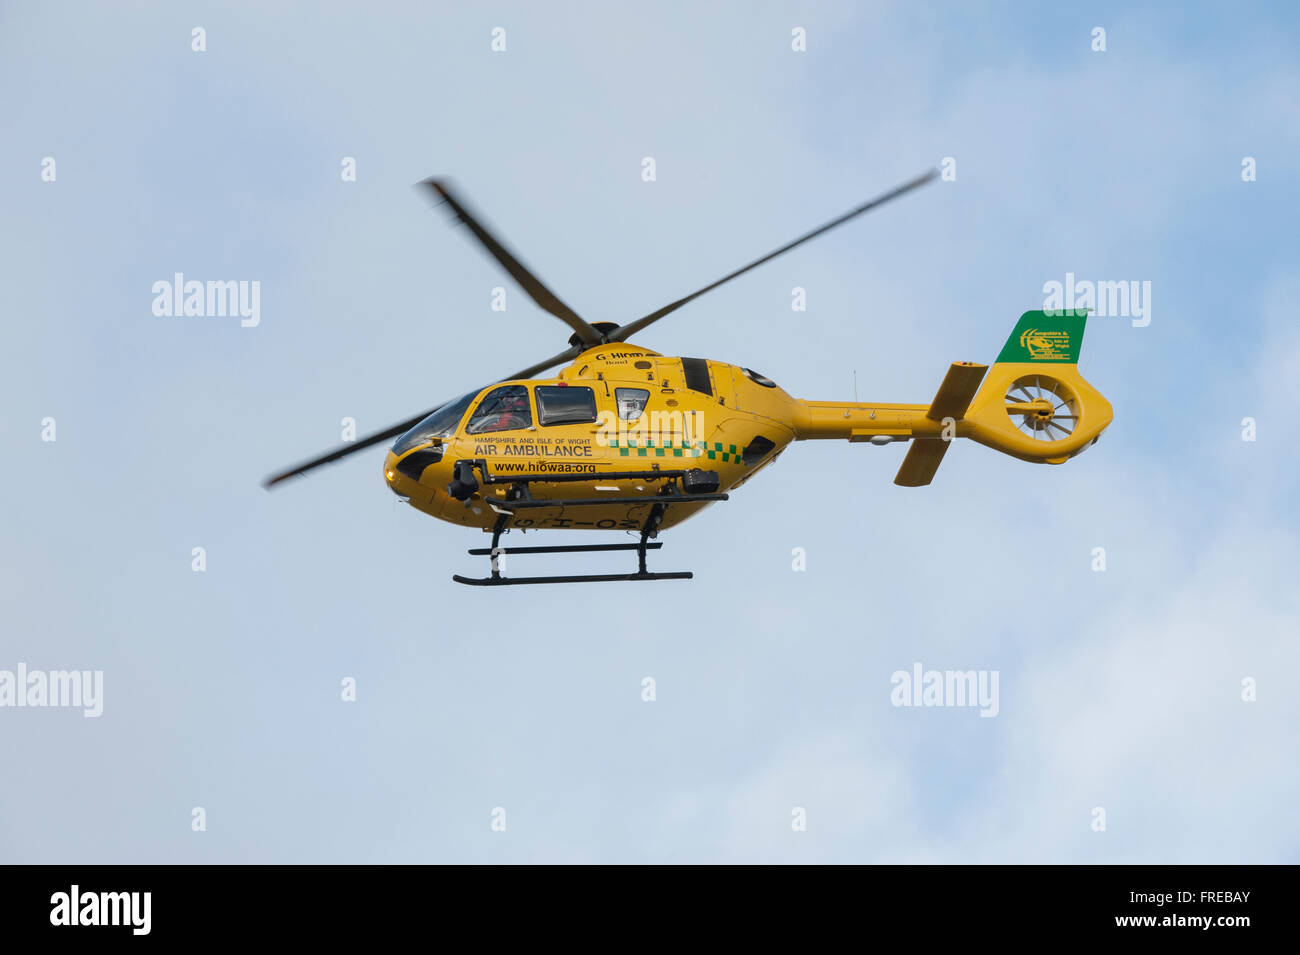 Hampshire and Isle of Wight Air Ambulance in flight - Stock Image